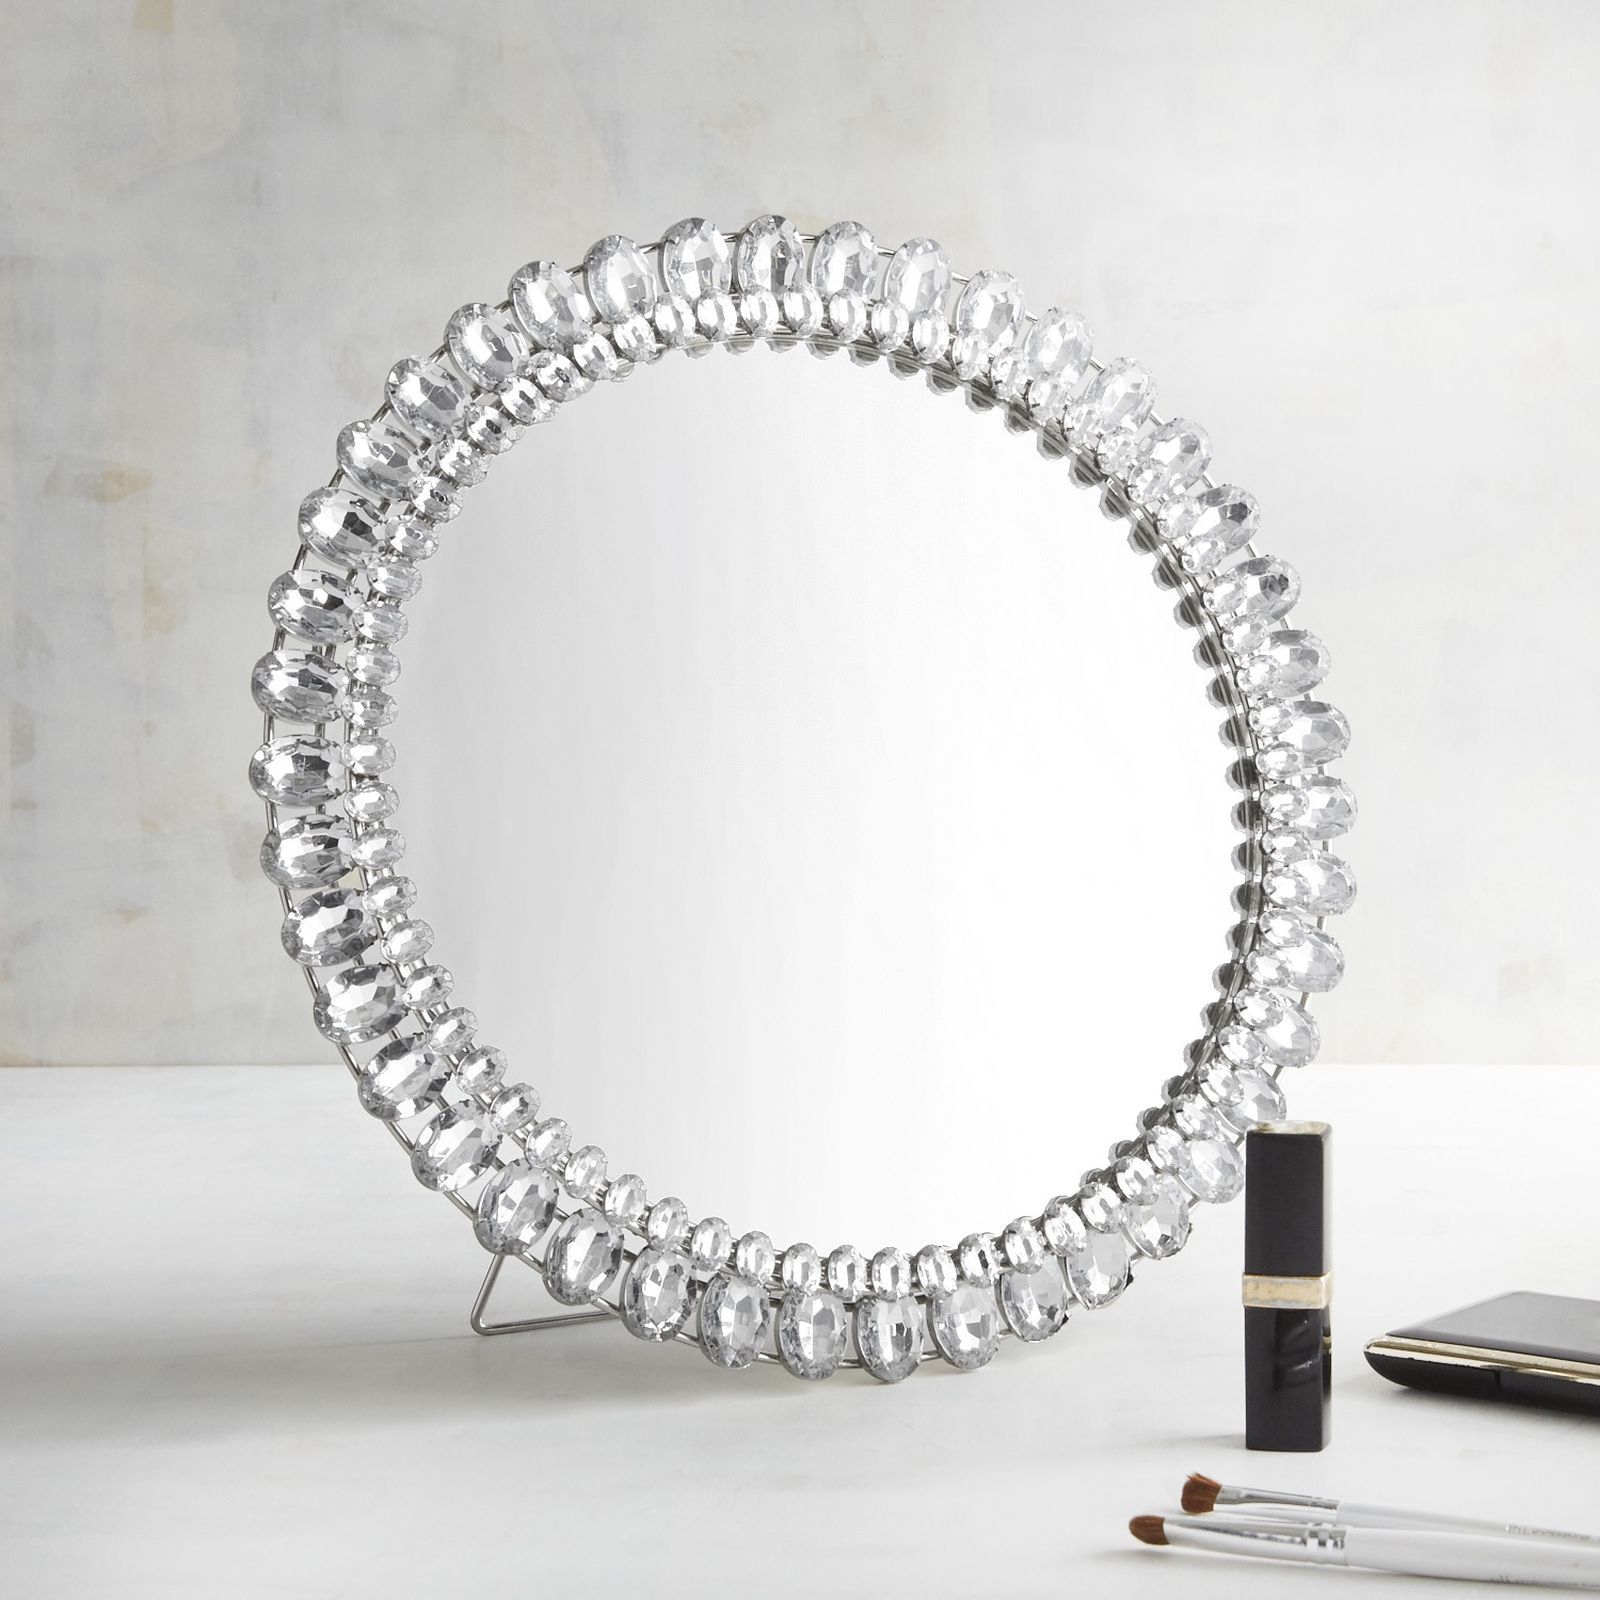 Make A Sparkling Statement With Our Silver Jeweled Accent throughout Silver Frame Accent Mirrors (Image 20 of 30)